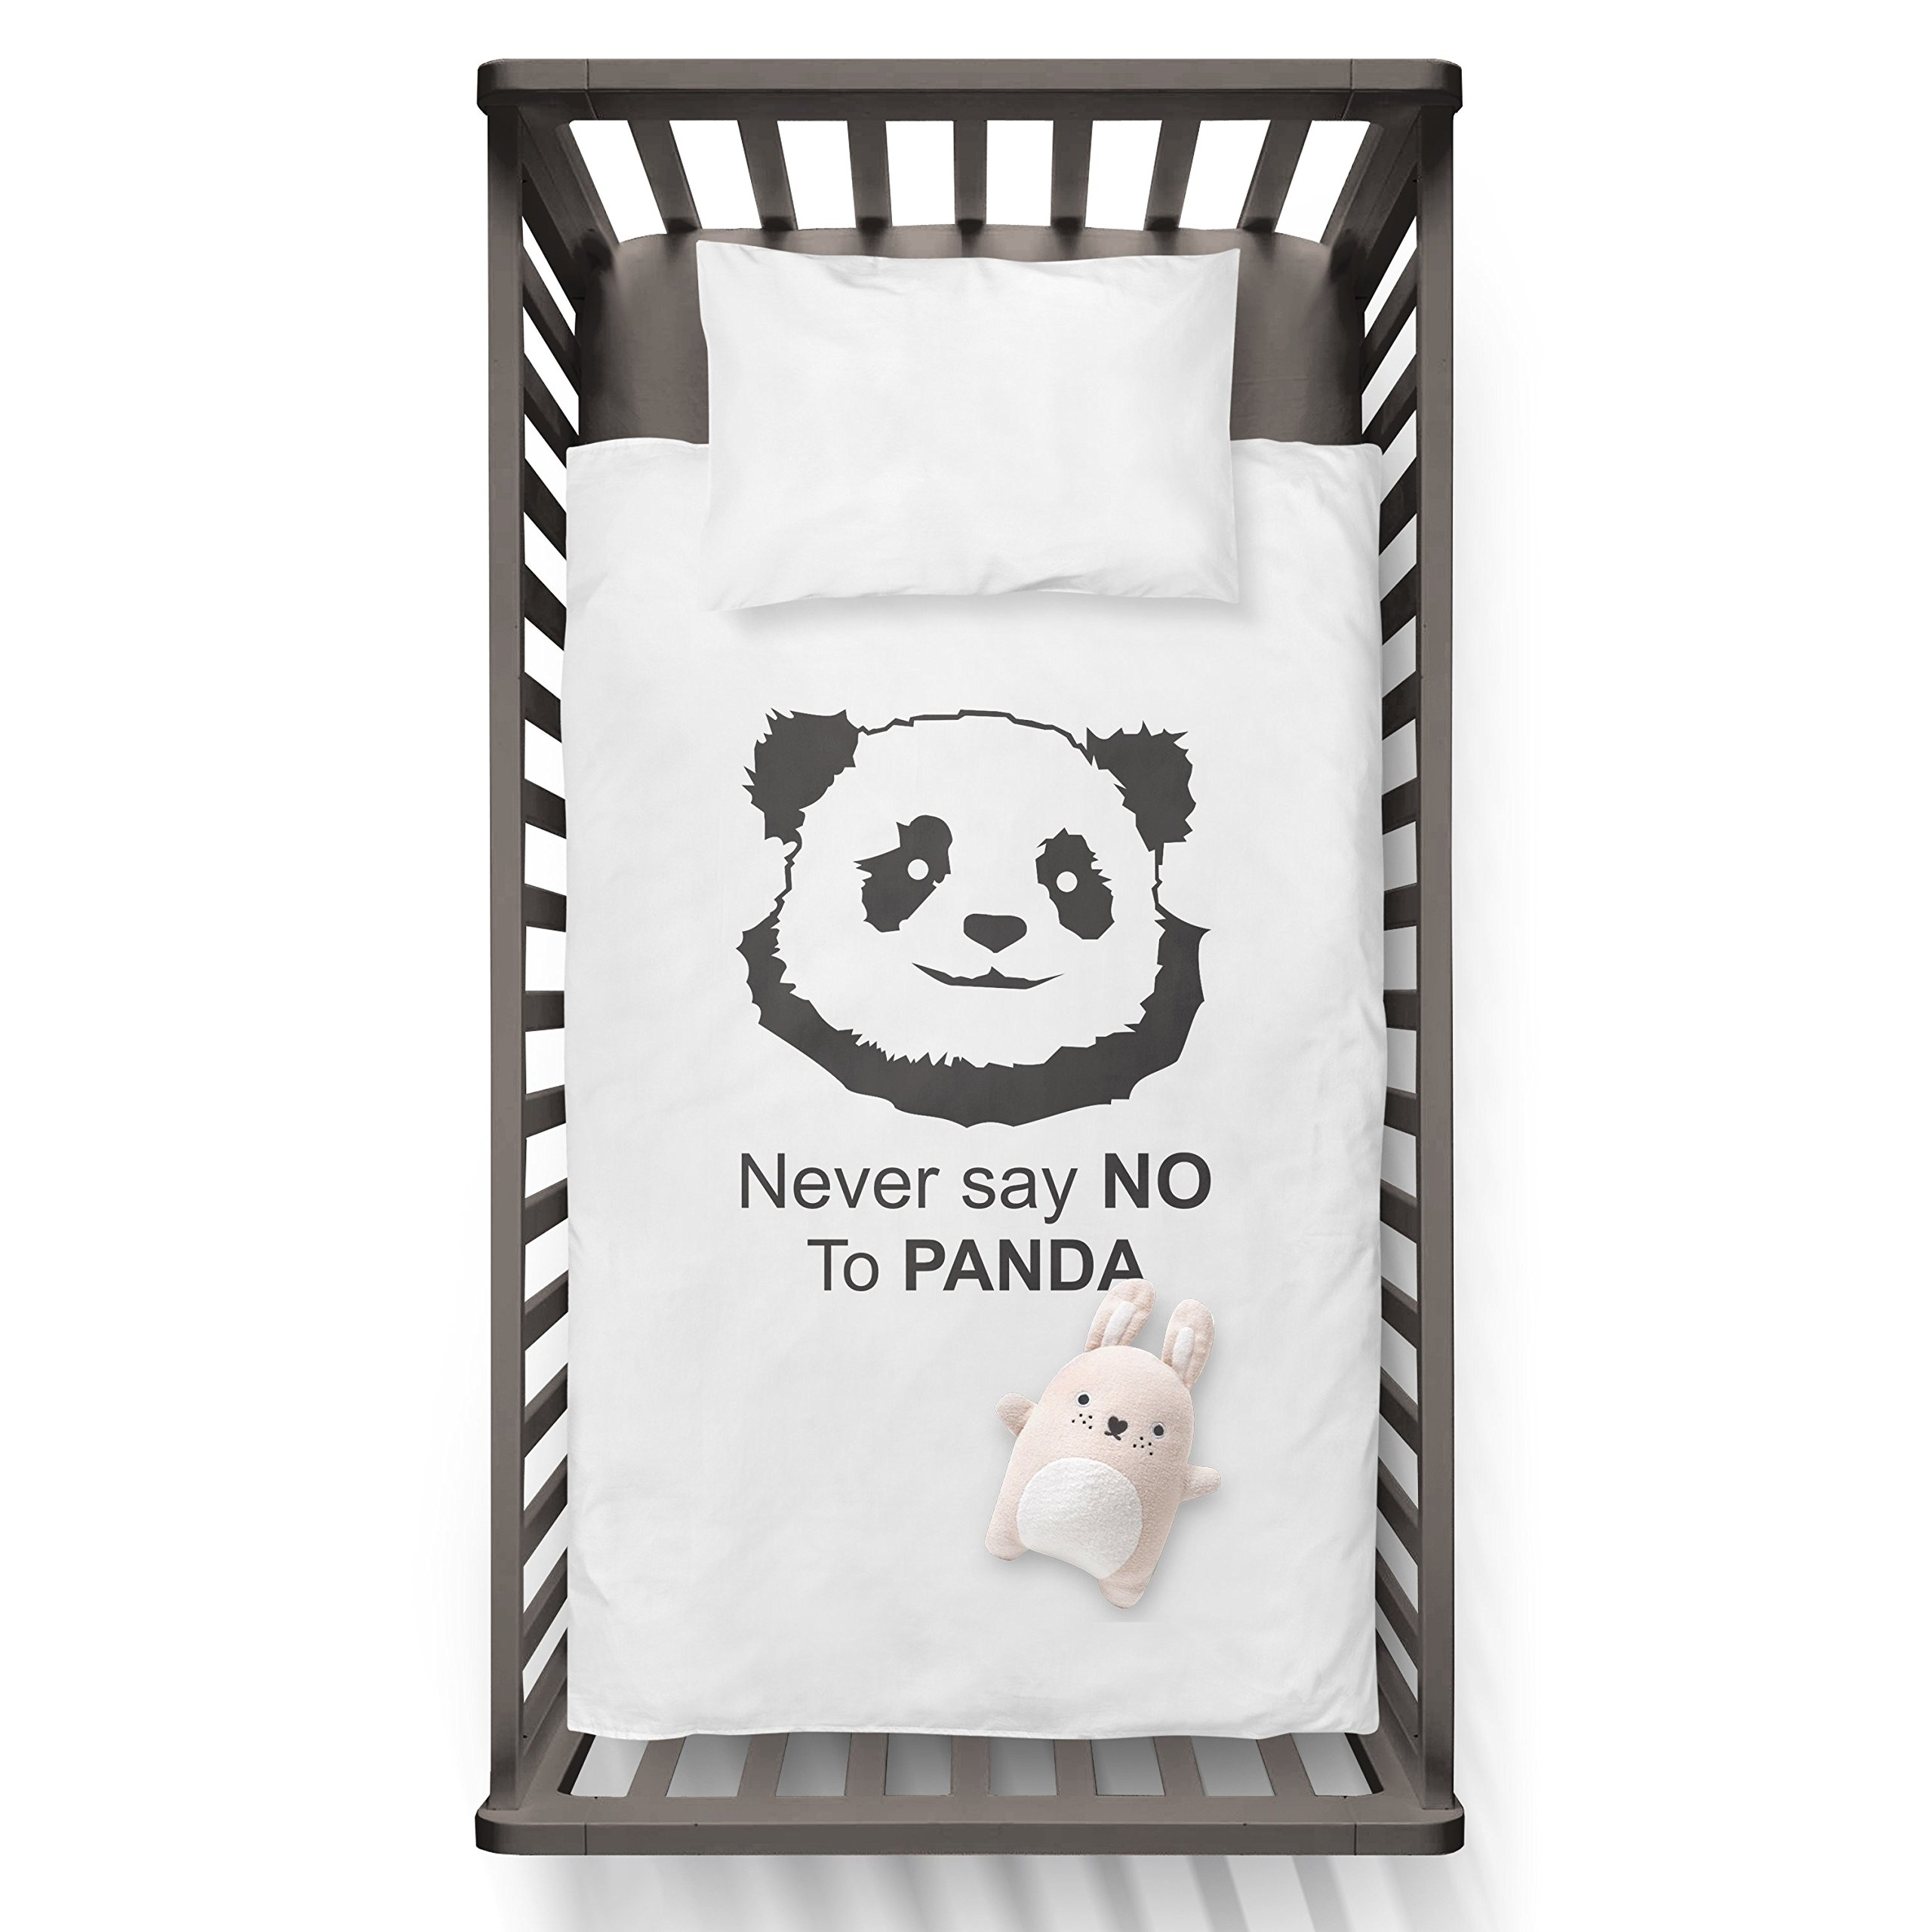 Never say NO to PANDA Funny Humor Hip Baby Duvet /Pillow set,Toddler Duvet,Oeko-Tex,Personalized duvet and pillow,Oraganic,gift